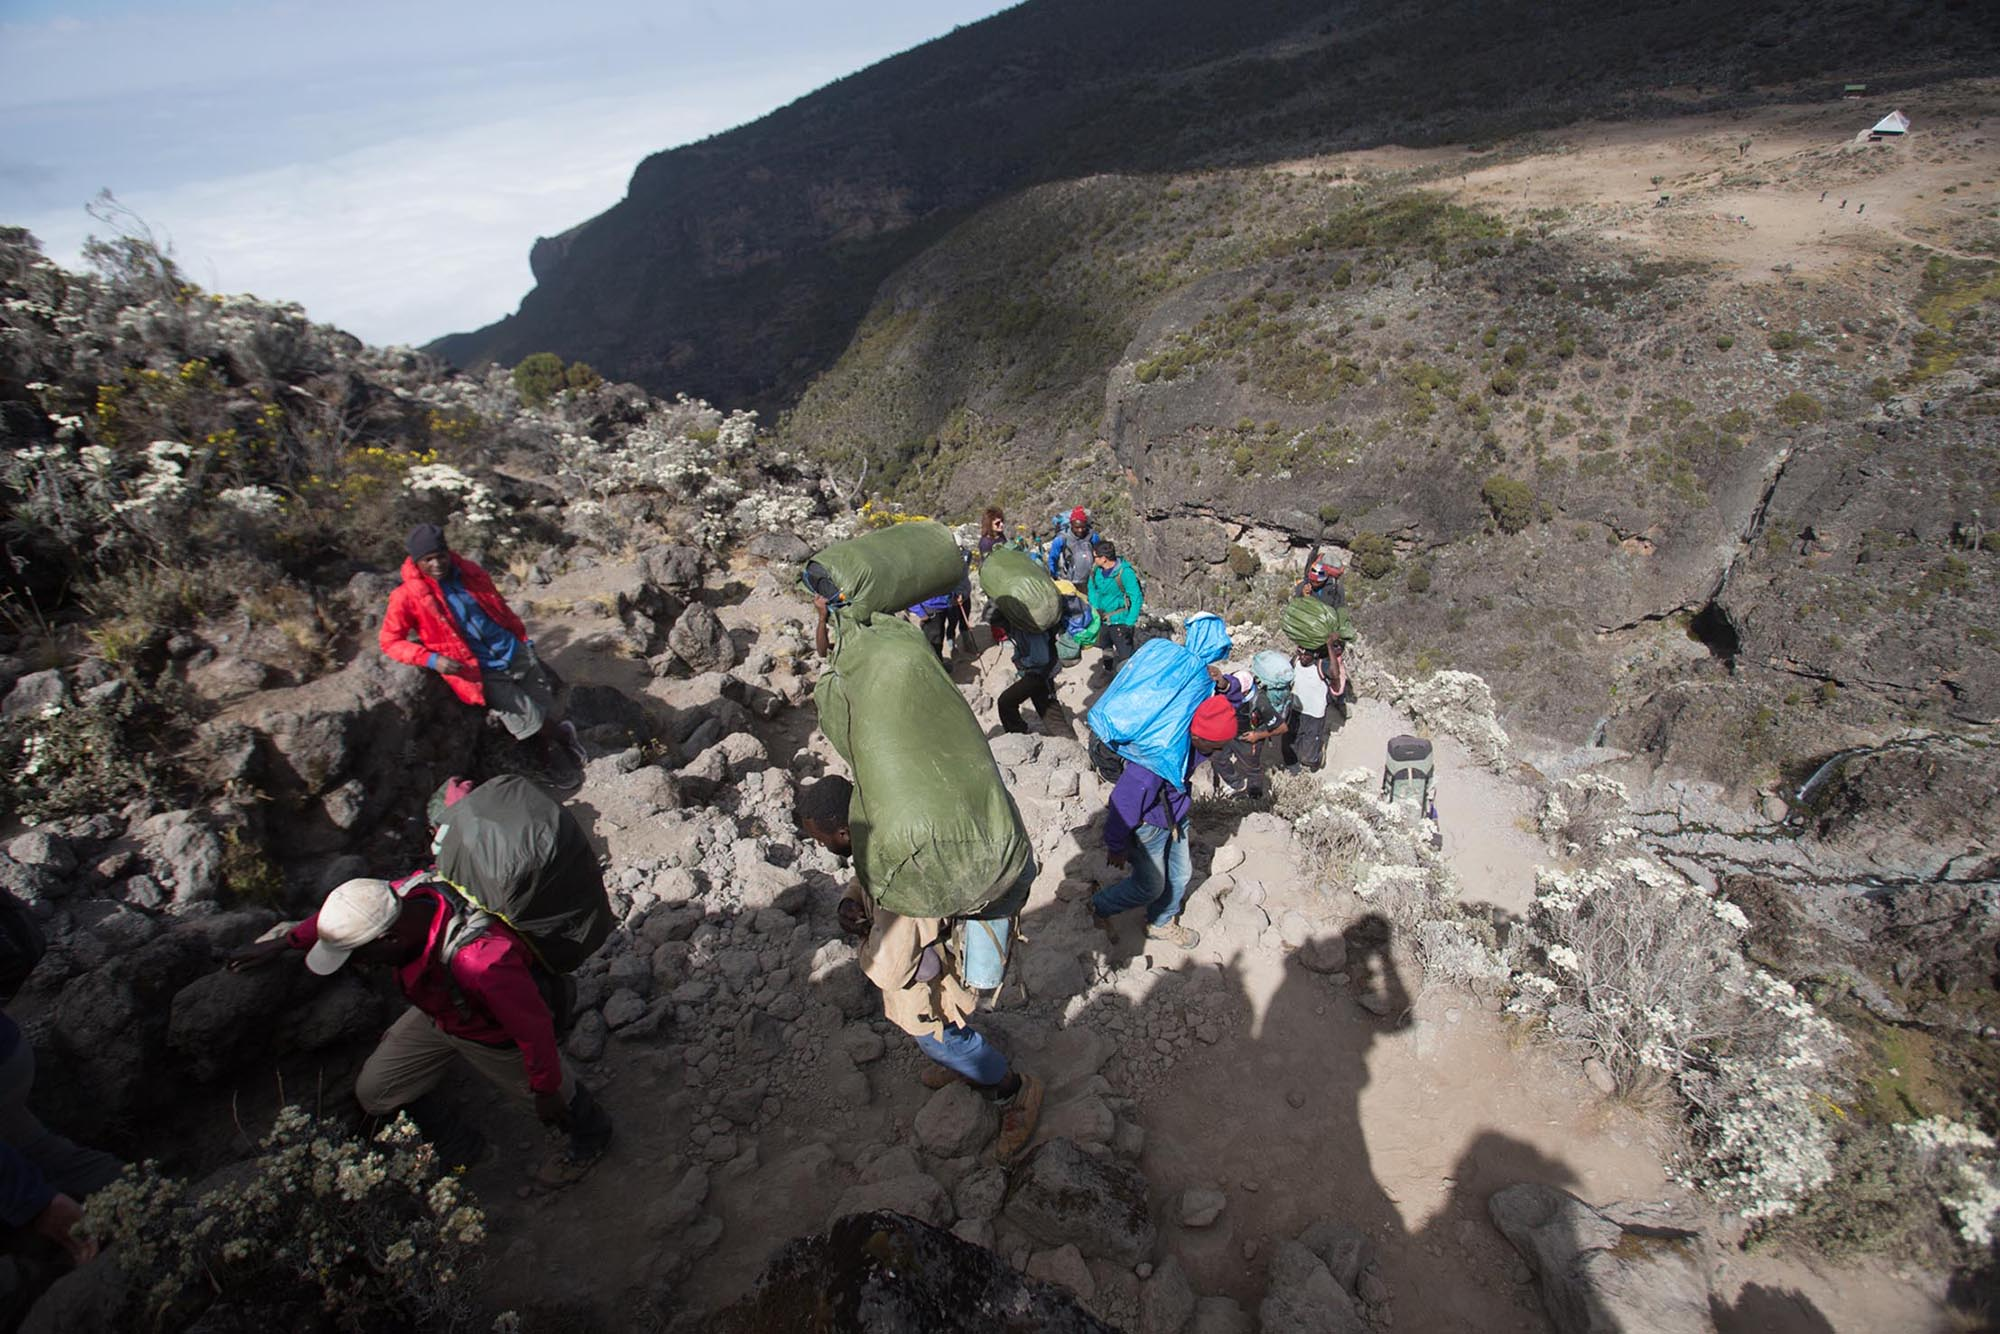 The Follow Alice team climbing Kilimanjaro